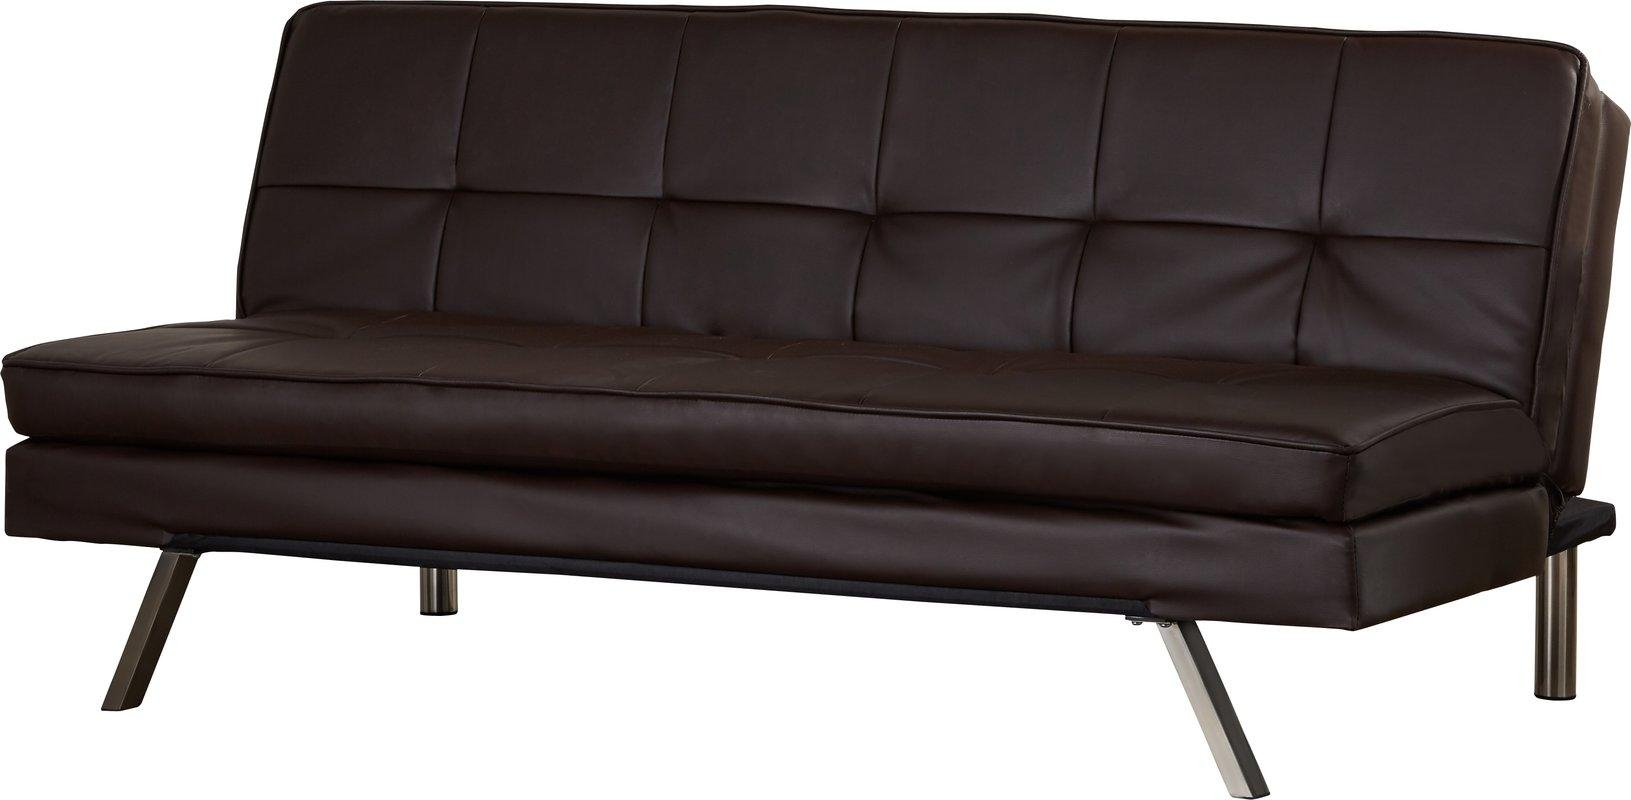 Leader Lifestyle Florence 3 Seater Clic Clac Sofa Bed & Reviews Inside Florence Sofa Beds (Image 13 of 20)